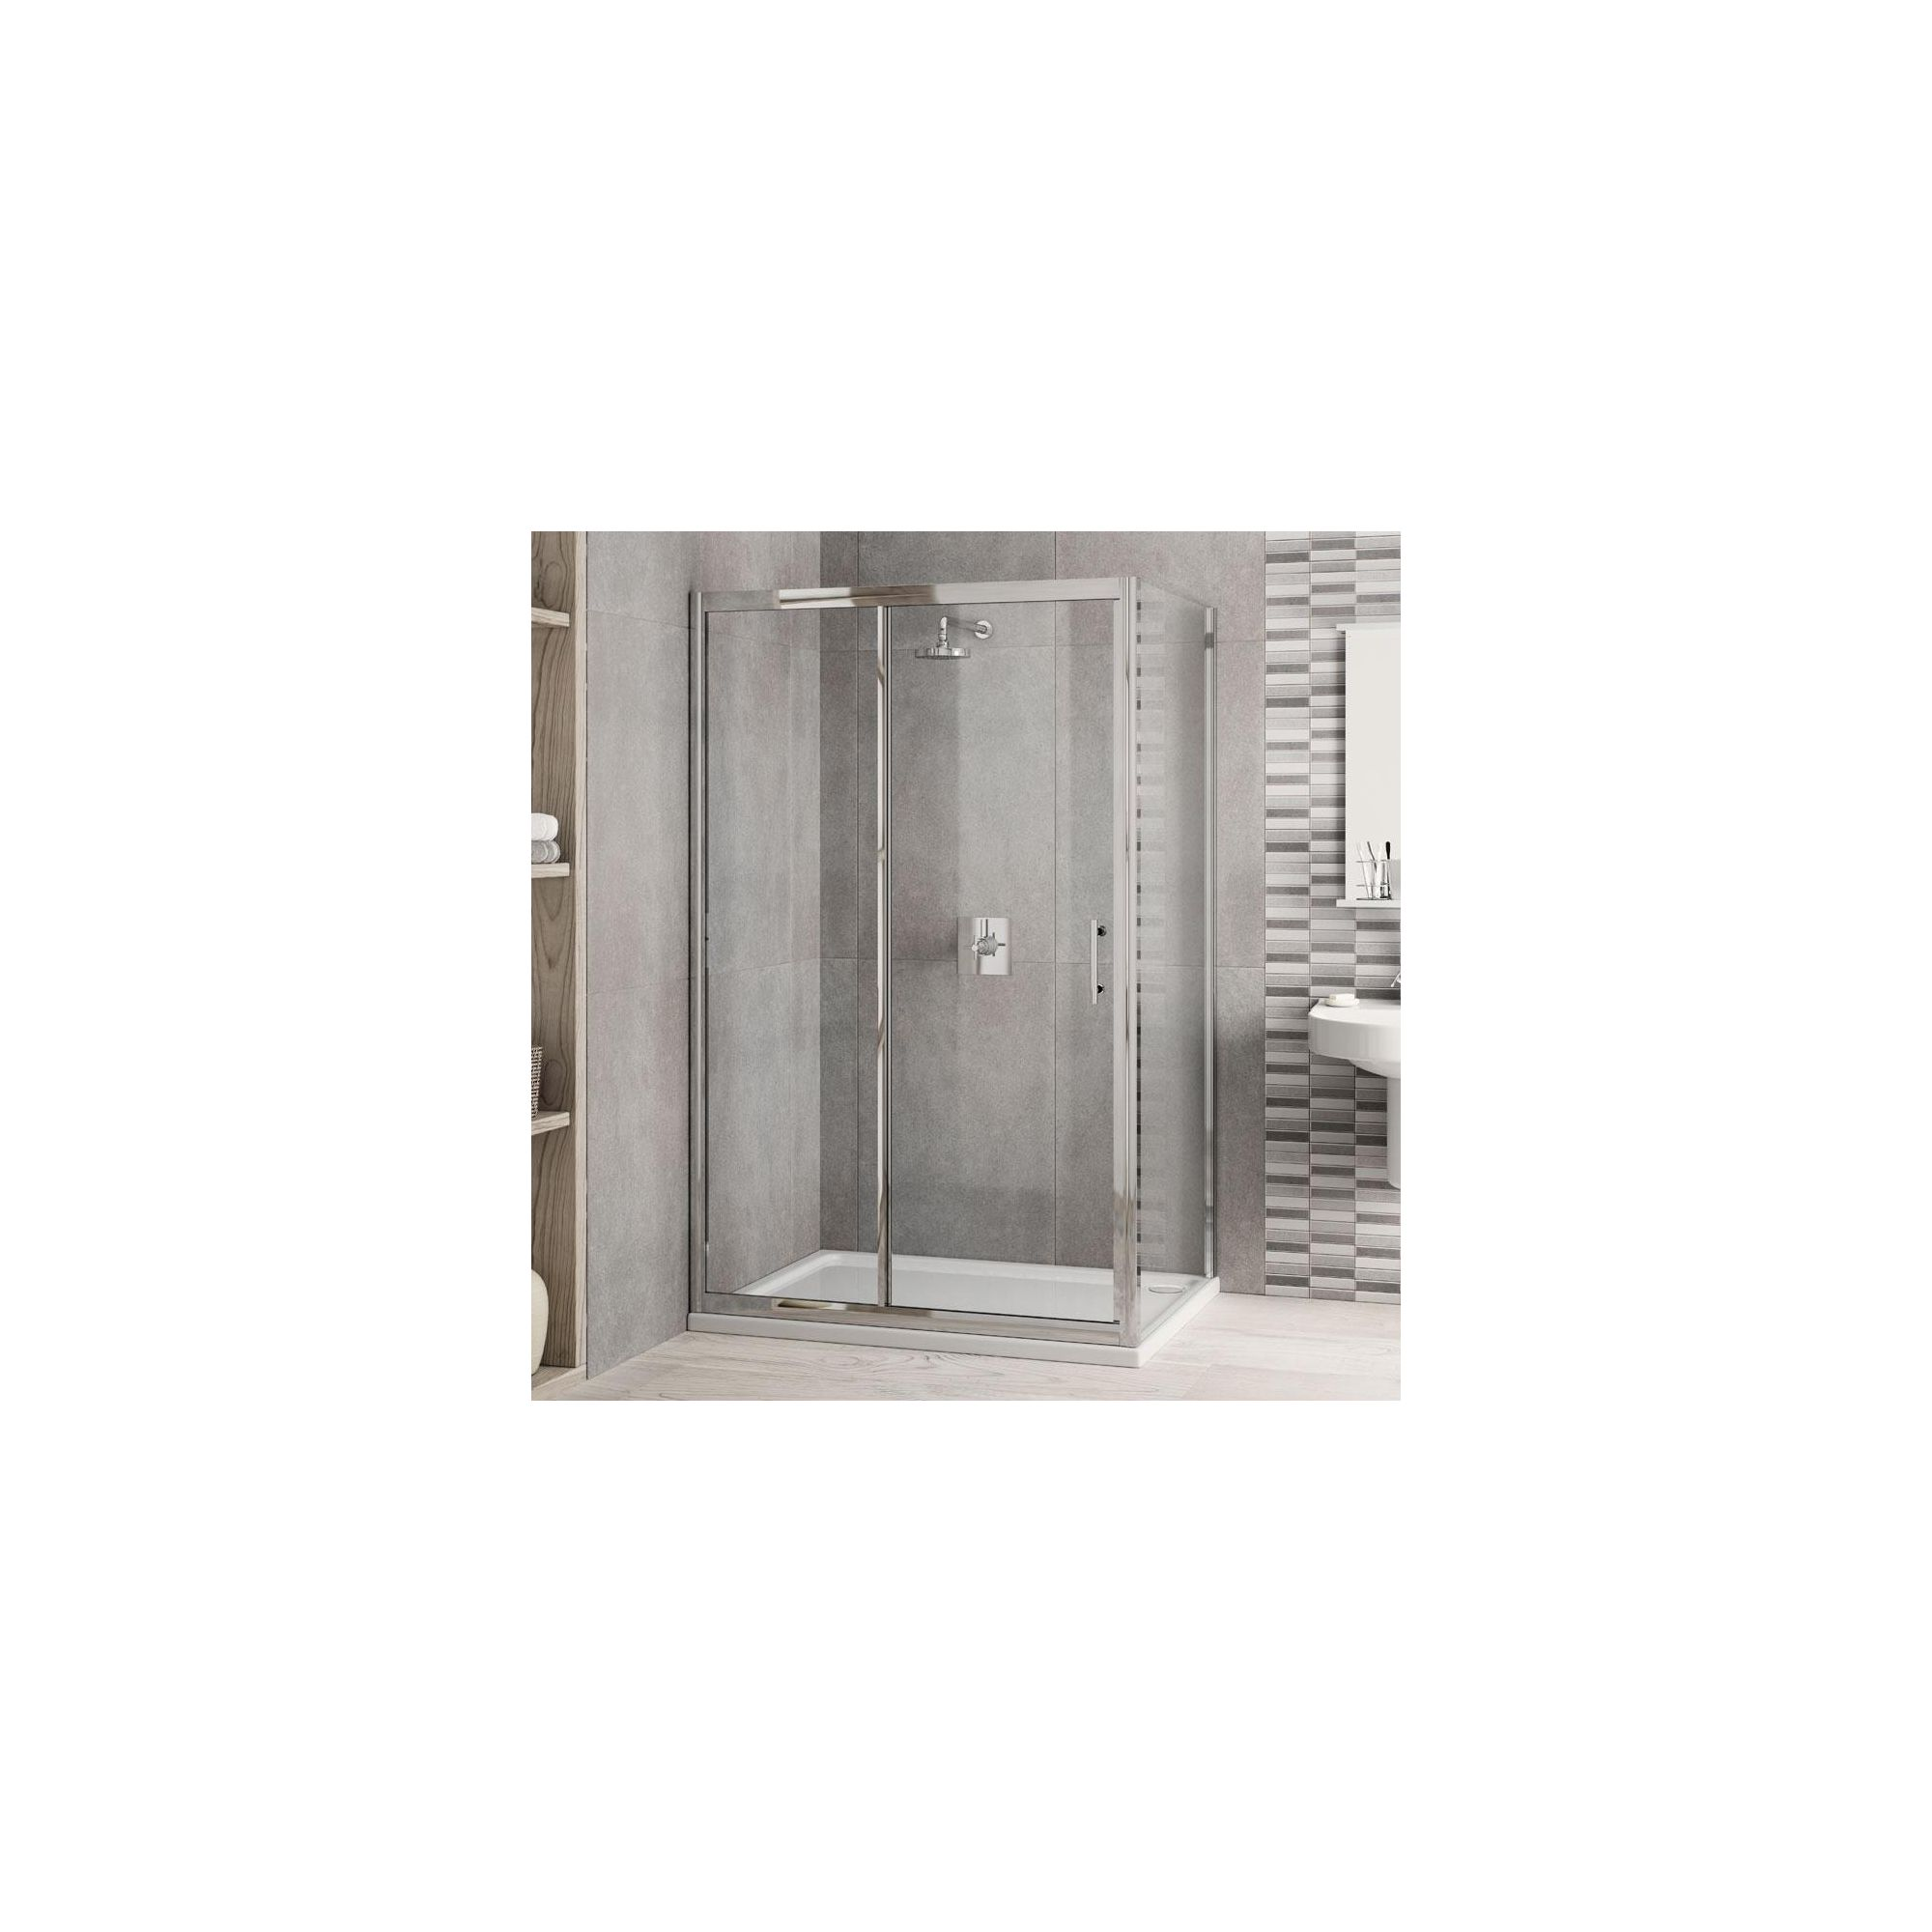 Elemis Inspire Two-Panel Jumbo Sliding Door Shower Enclosure, 1000mm x 900mm, 6mm Glass, Low Profile Tray at Tesco Direct